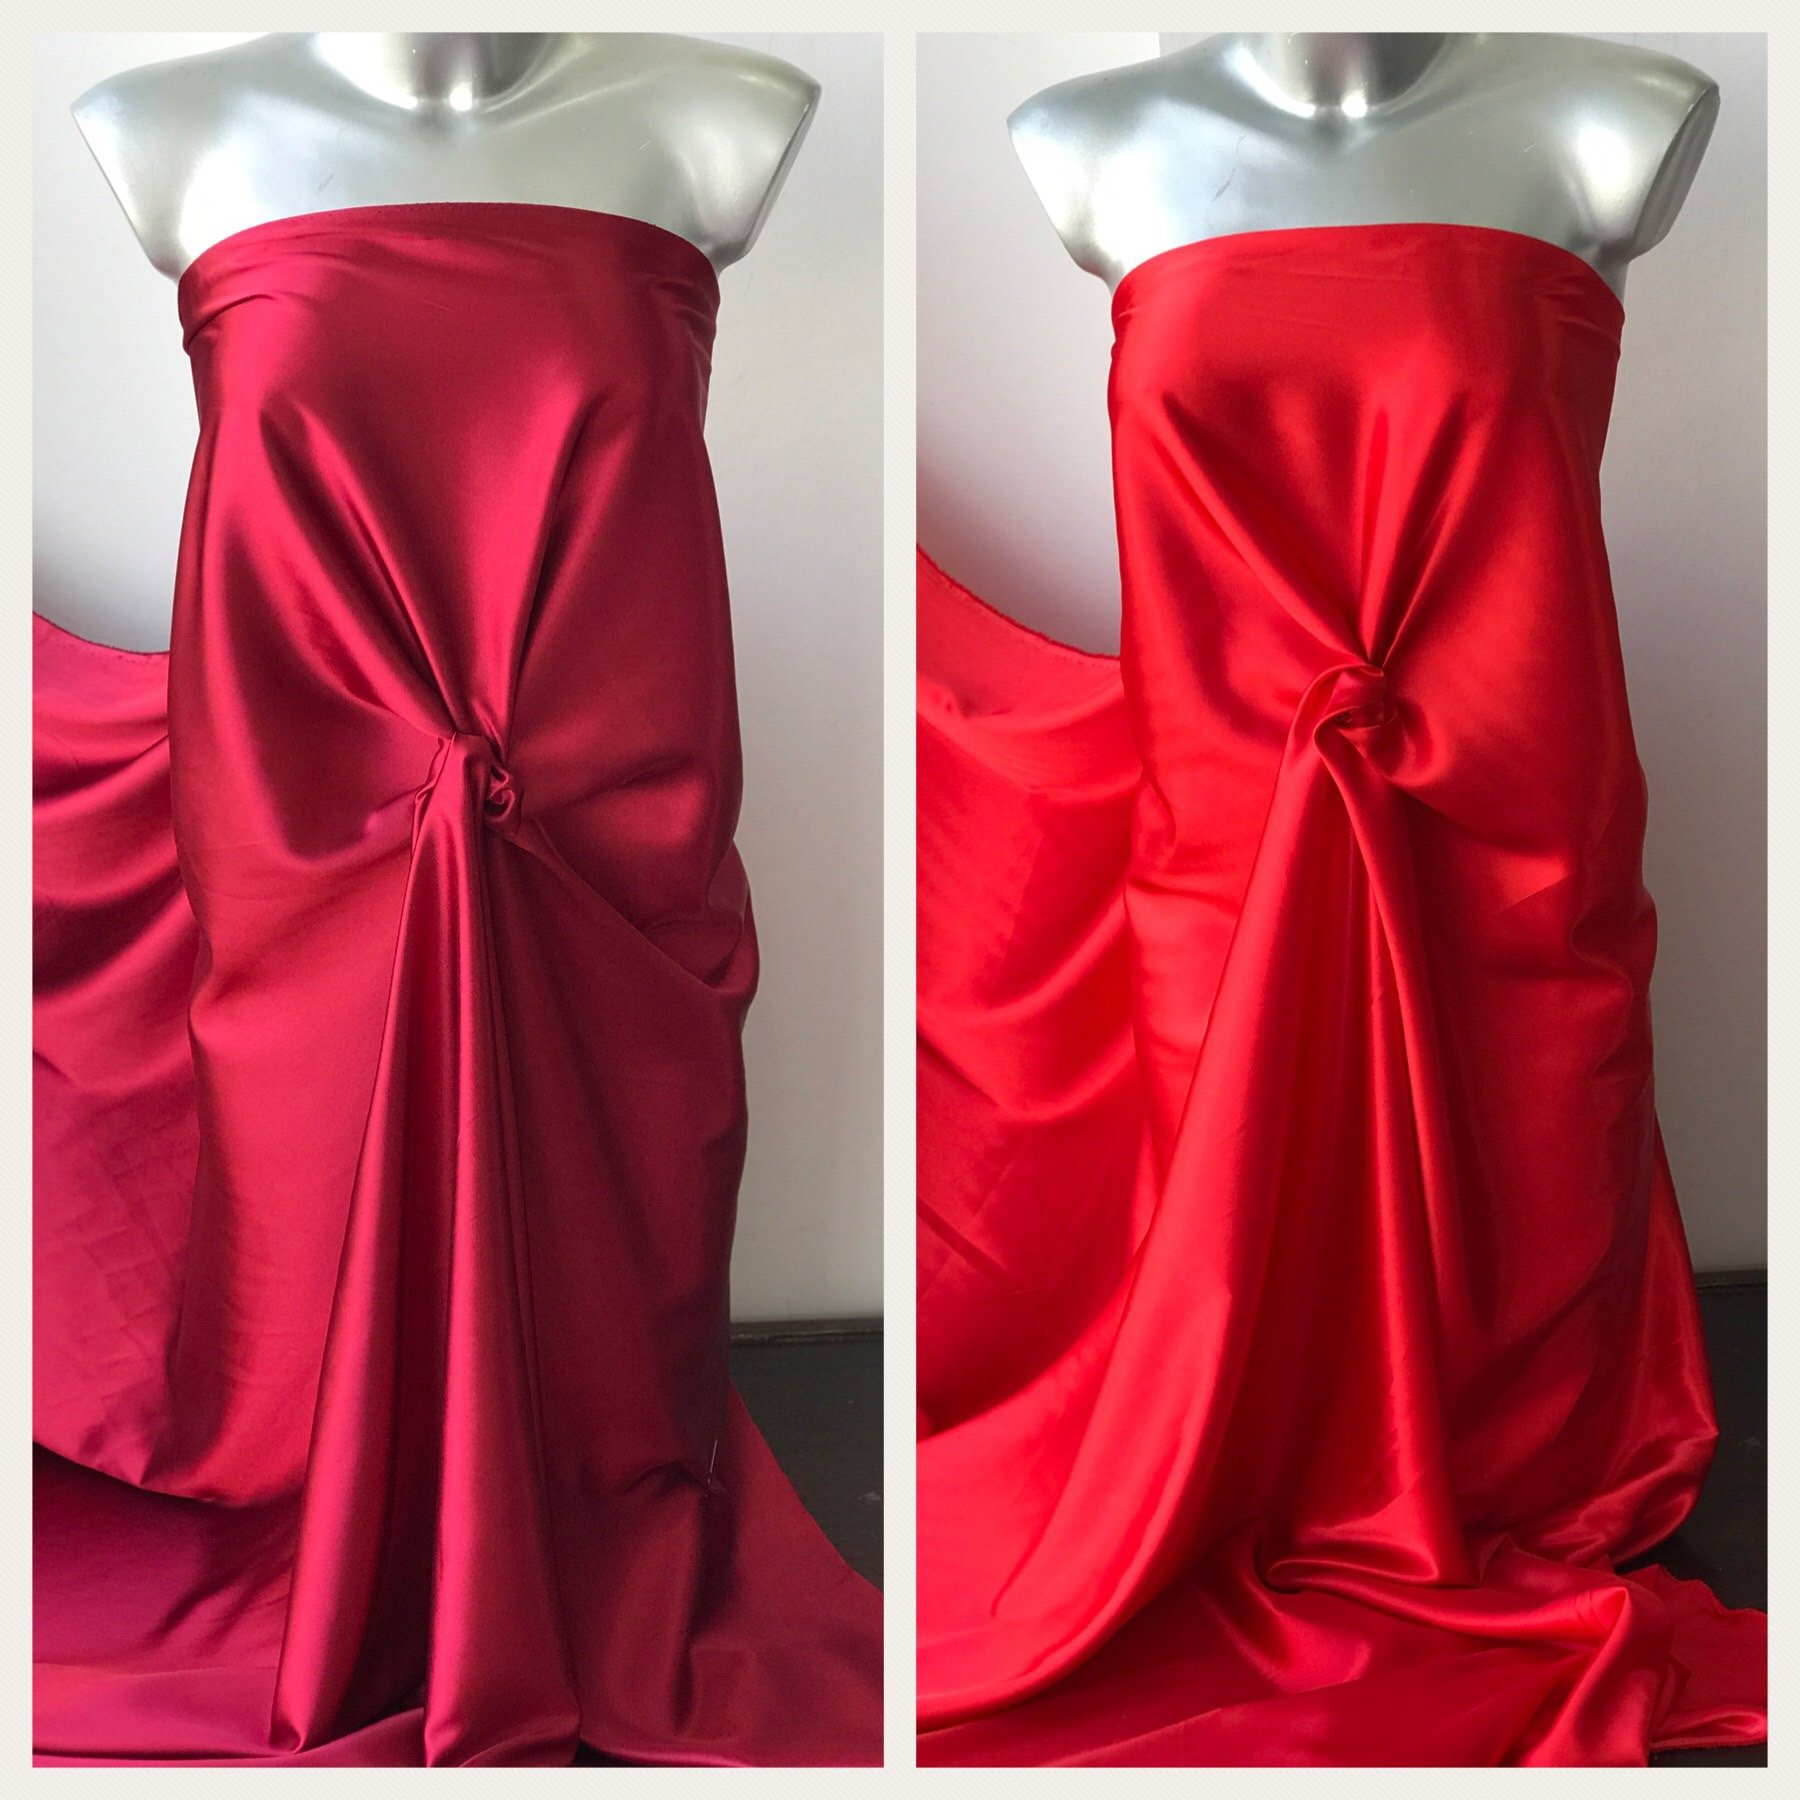 red satin fabric polyester spandex 2 way stretch lining under lace lingerie colour options 150cm wide